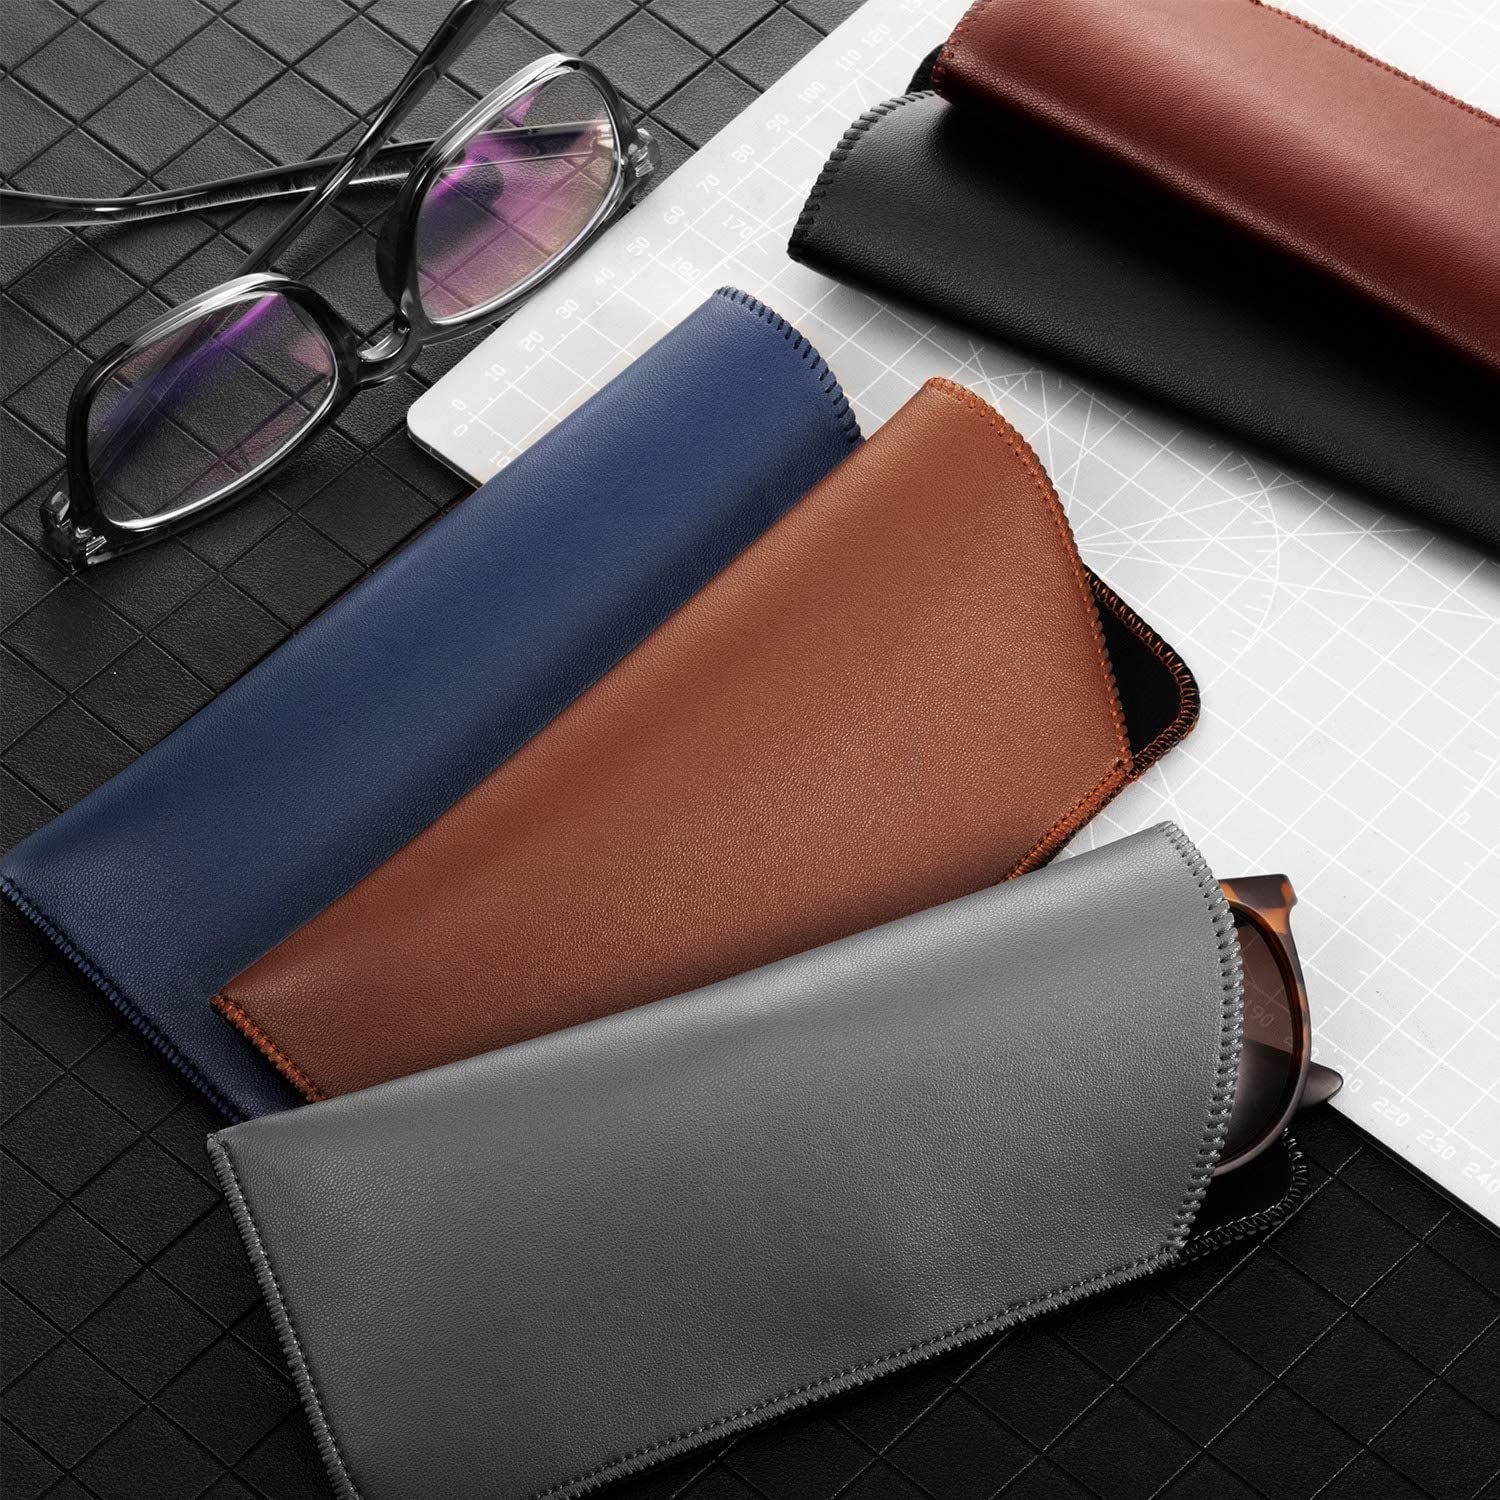 5 Pieces Slip In Eyeglass Pouch Artificial Leather Slim Travel Sunglasses Case Holder Faux Leather Eyewear Sleeve for Men Women Students